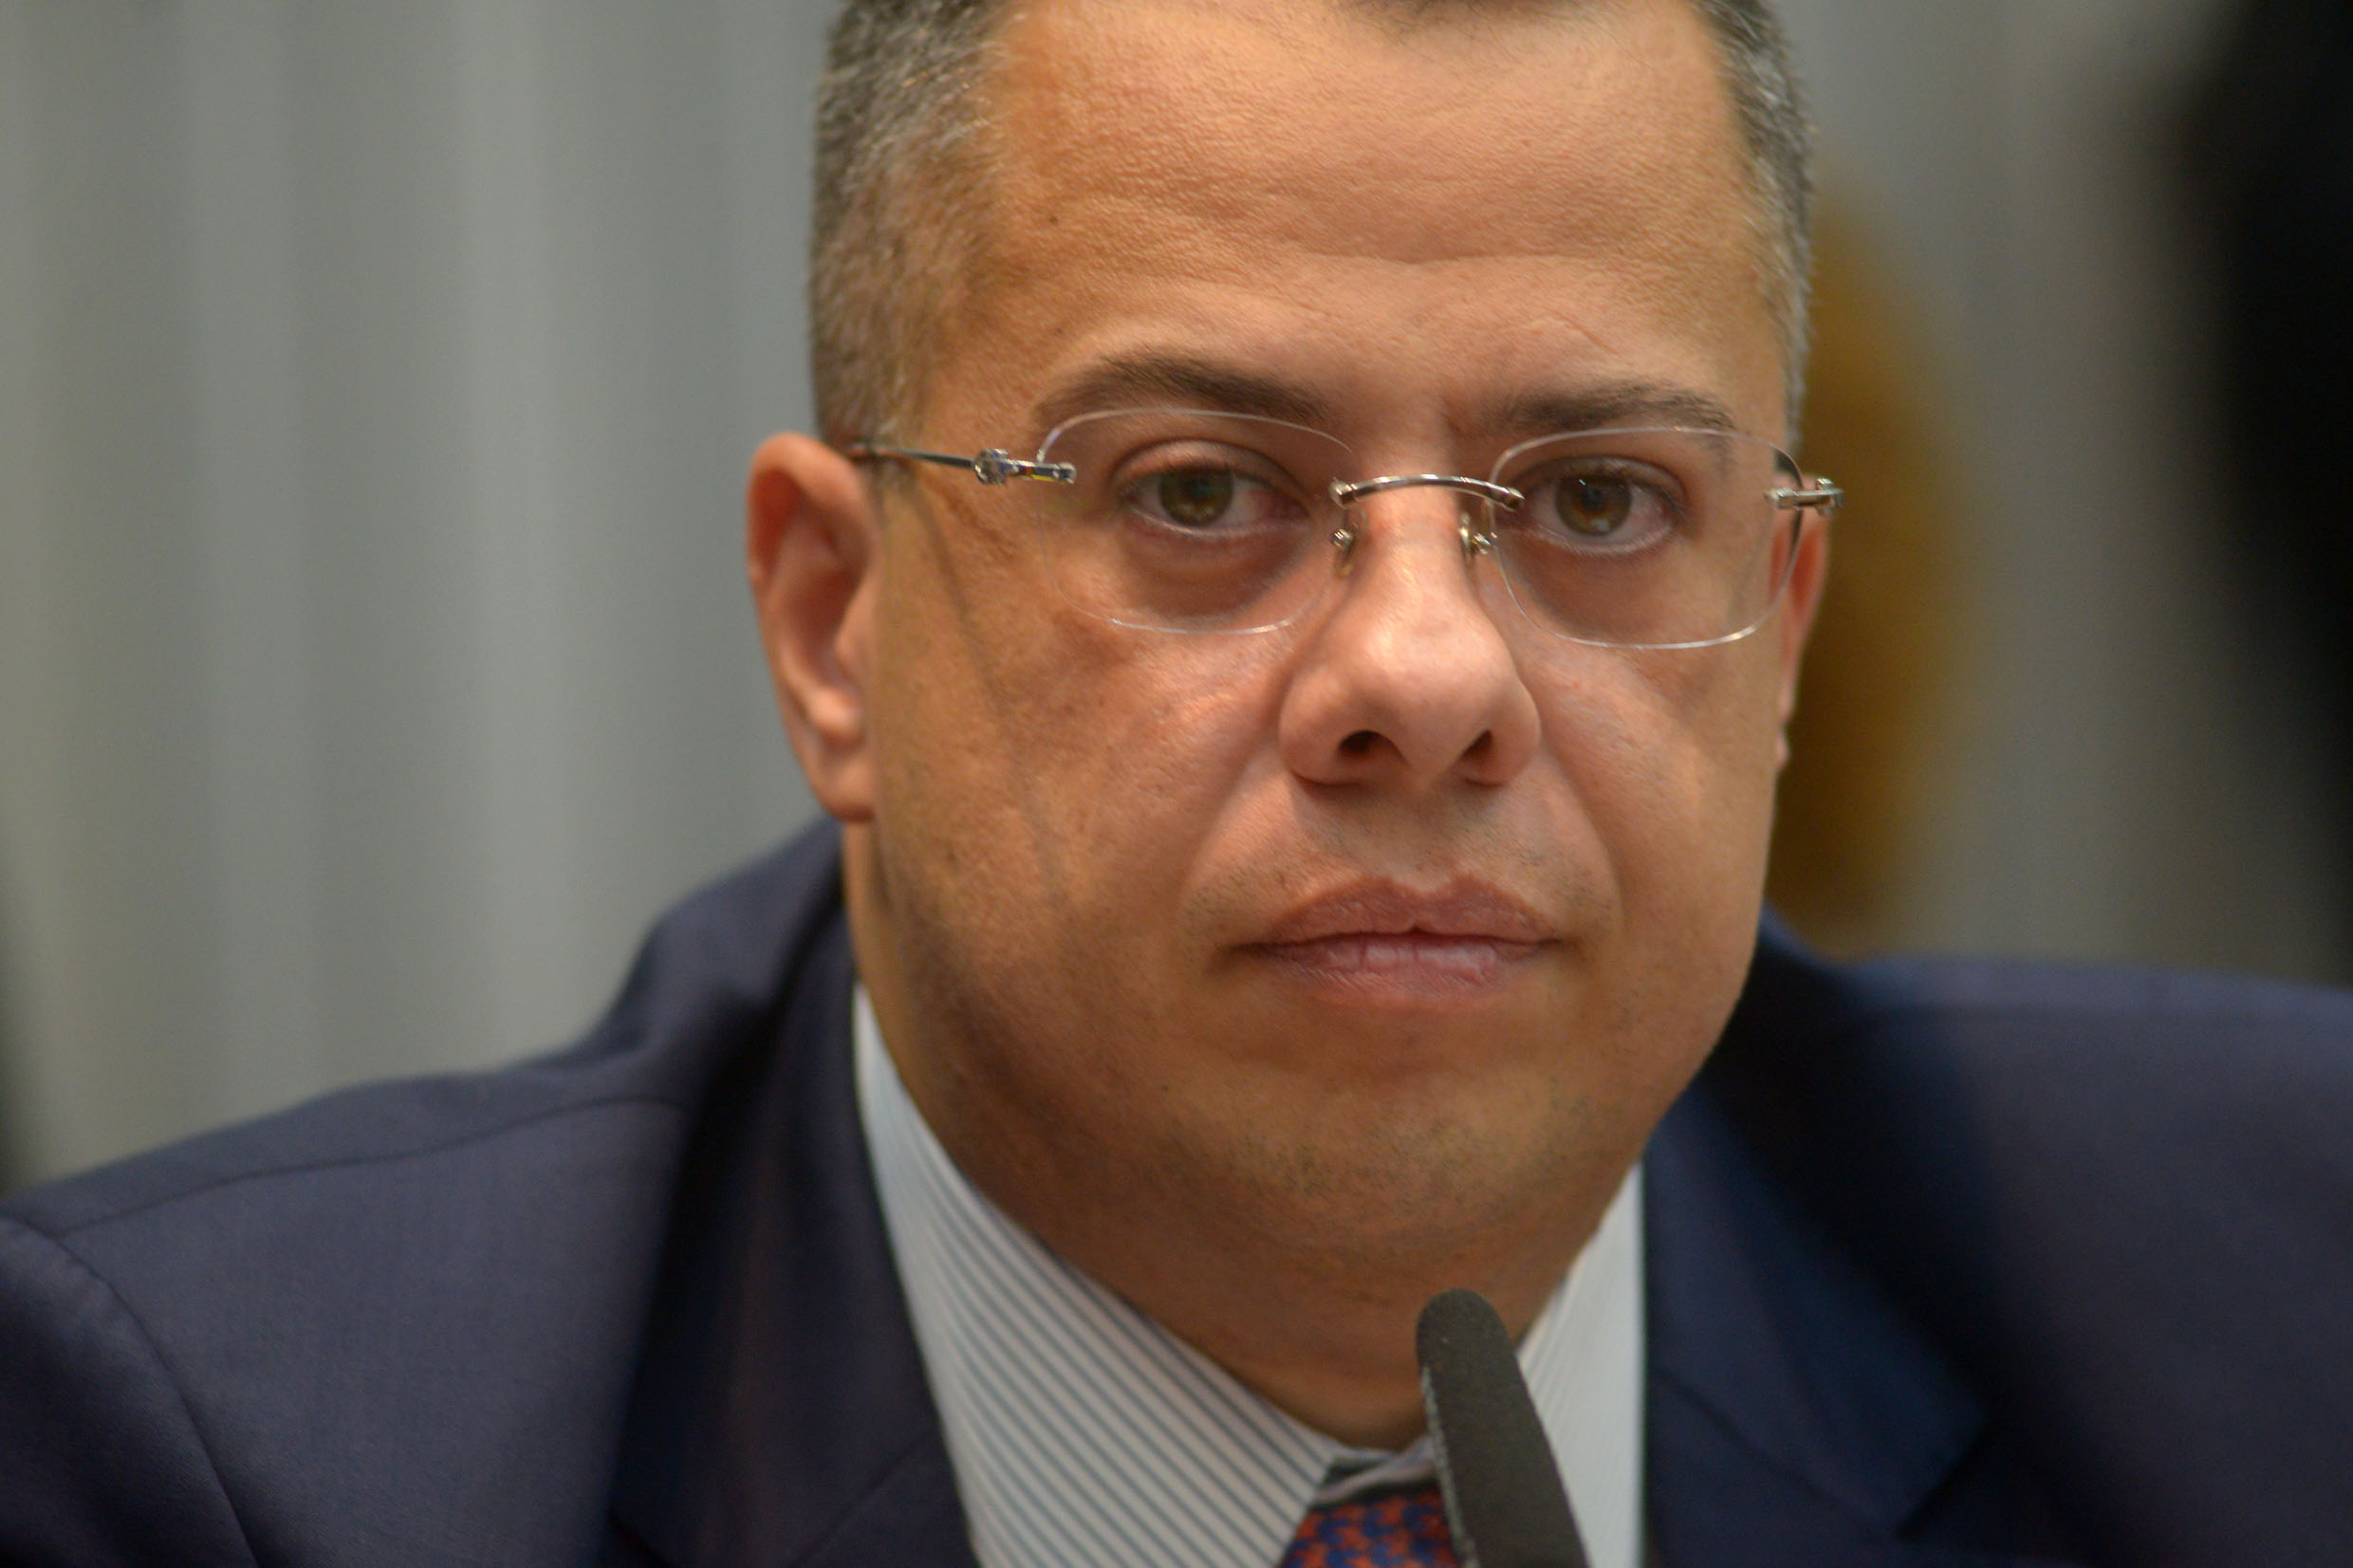 Wellington Moura<a style='float:right' href='https://www3.al.sp.gov.br/repositorio/noticia/N-03-2018/fg218680.jpg' target=_blank><img src='/_img/material-file-download-white.png' width='14px' alt='Clique para baixar a imagem'></a>